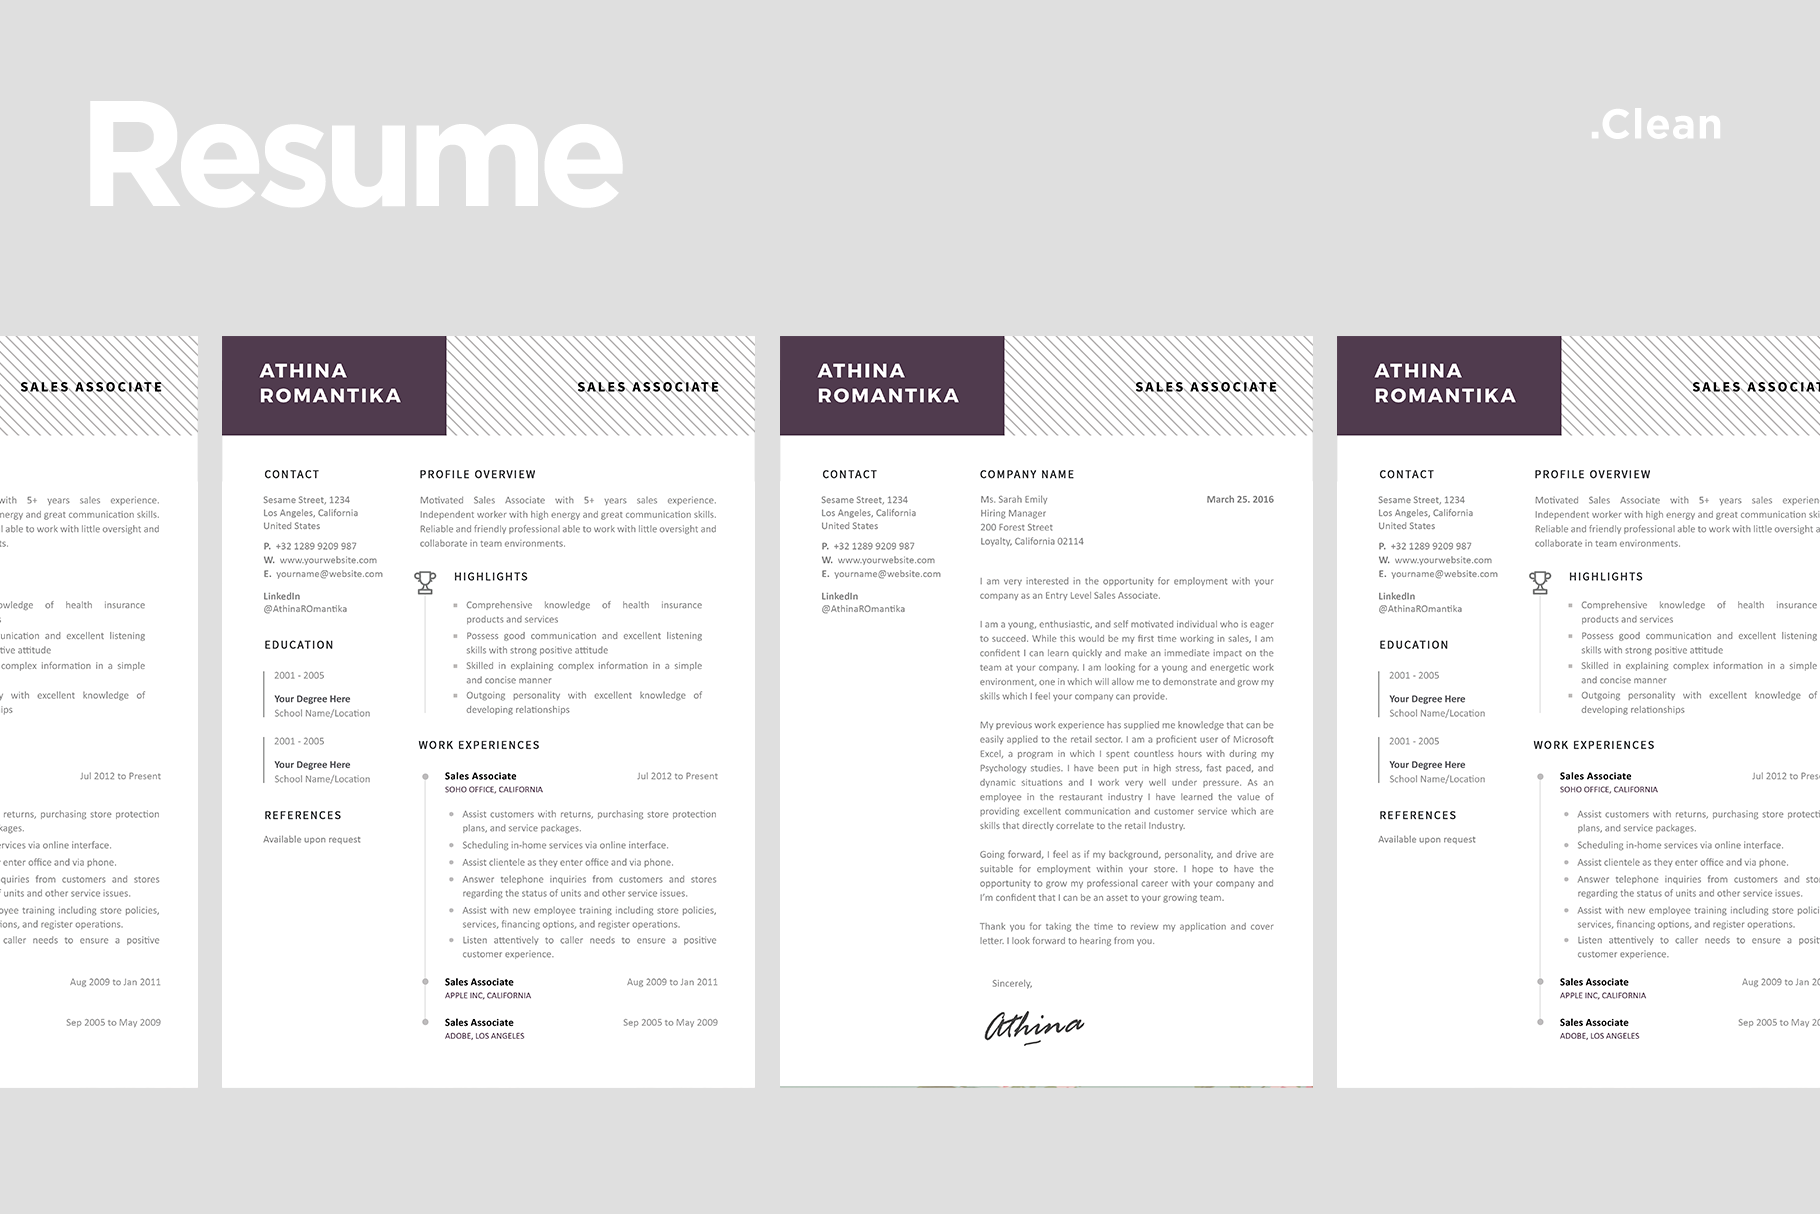 Clean Resume Templates with Match Cover Letter Template - 07